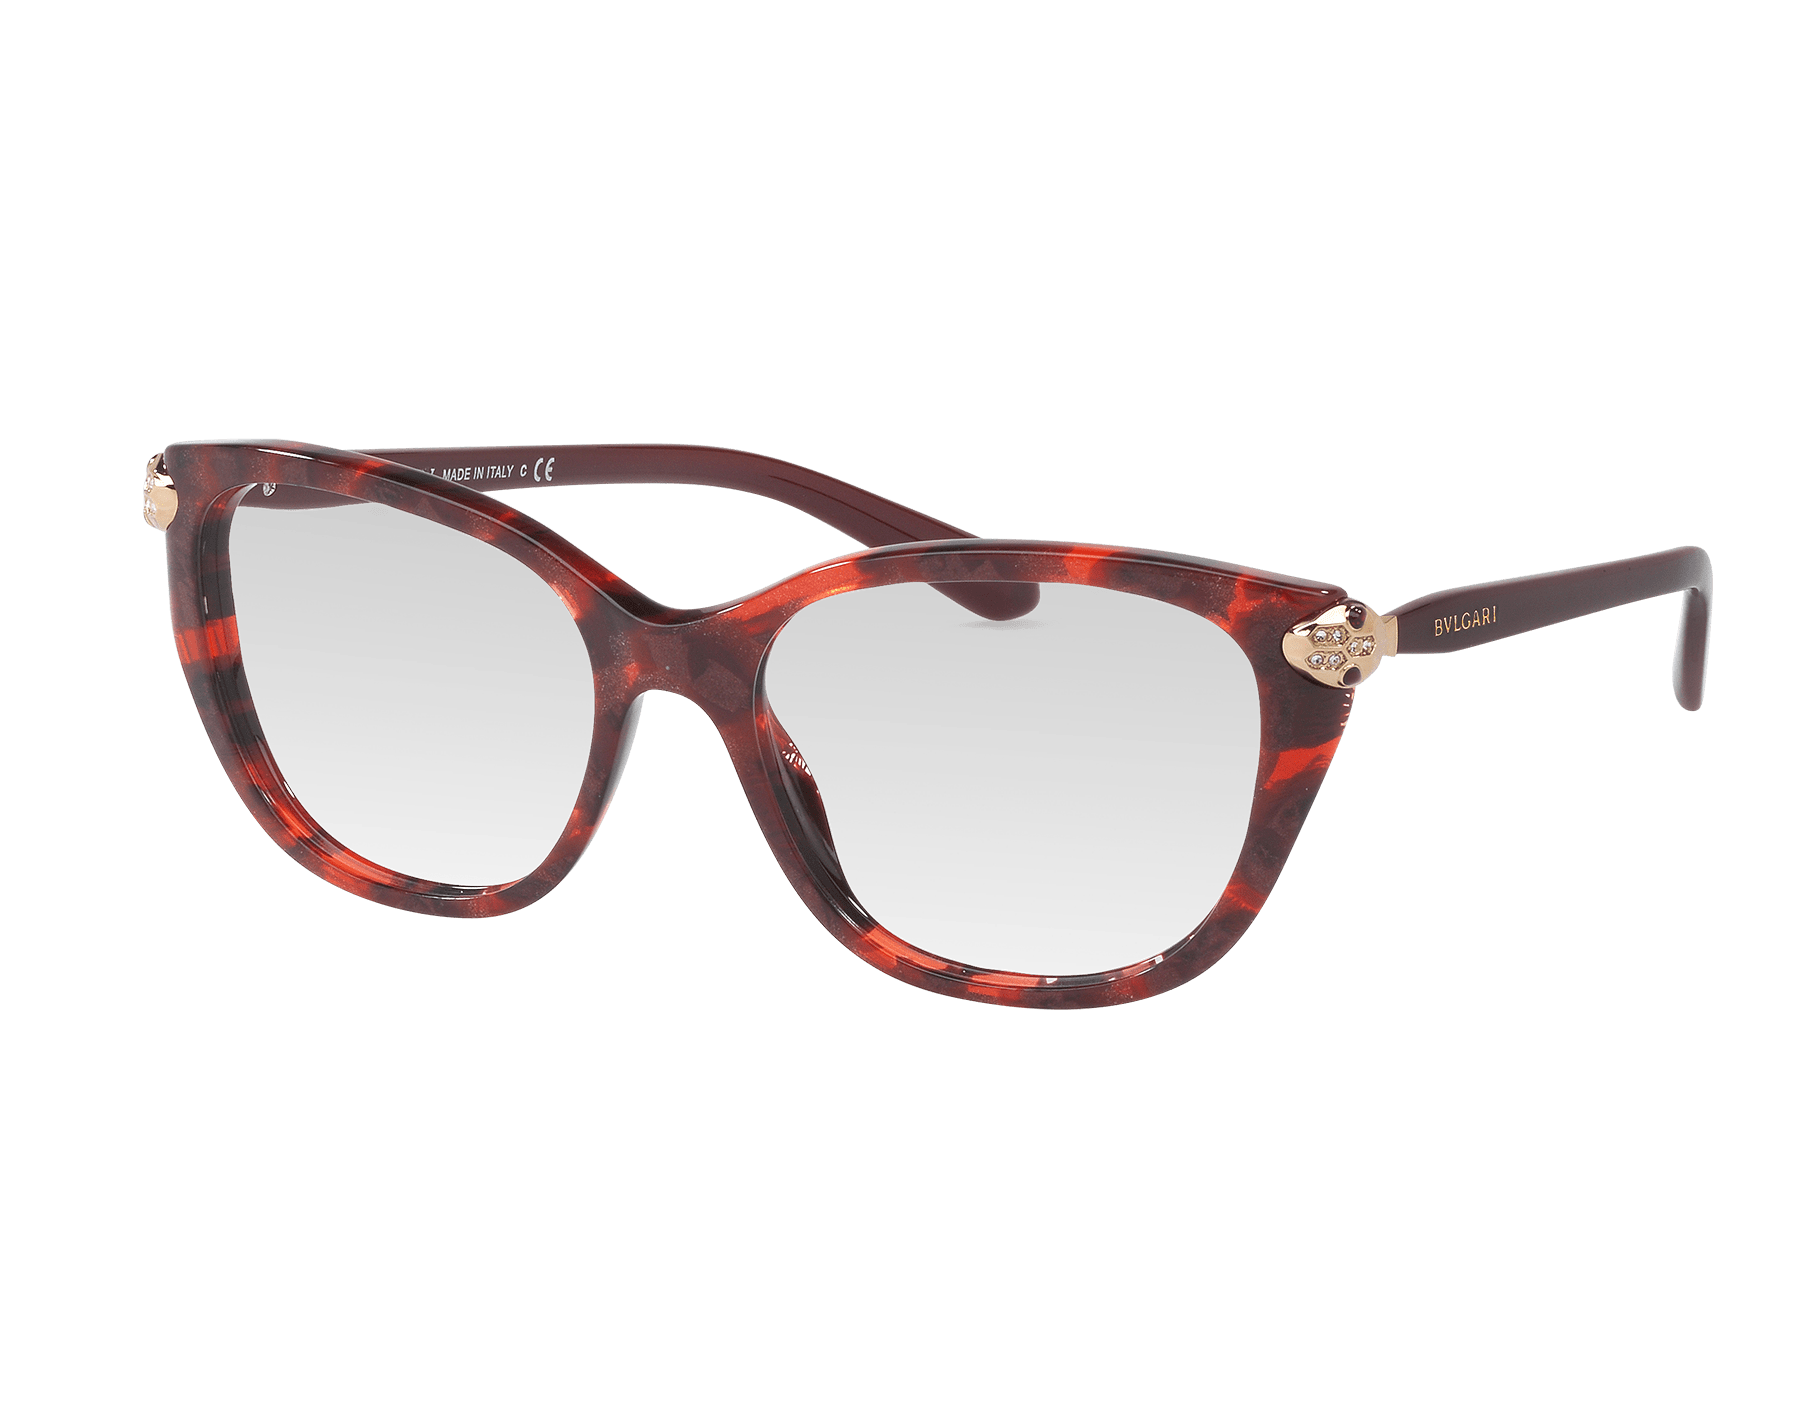 Serpenti soft catye acetate eyeglasses with enamel and crystal décor 903367 image 1